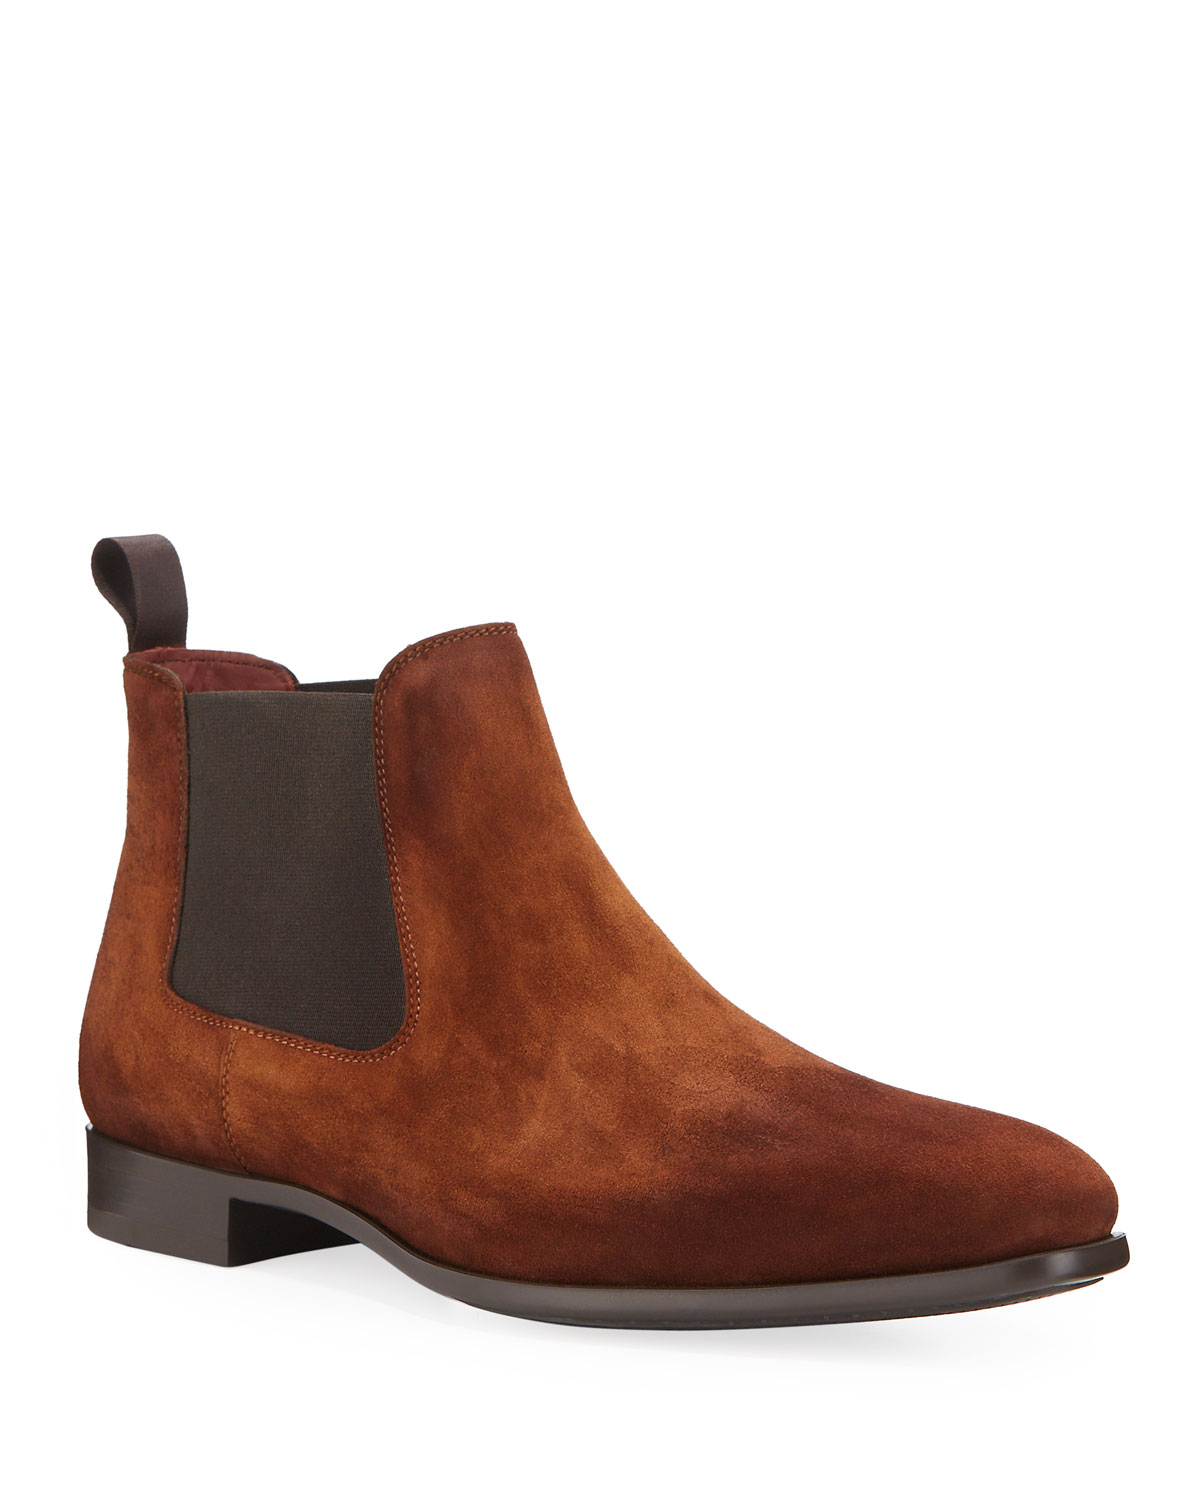 mens-suede-chelsea-boots by magnanni